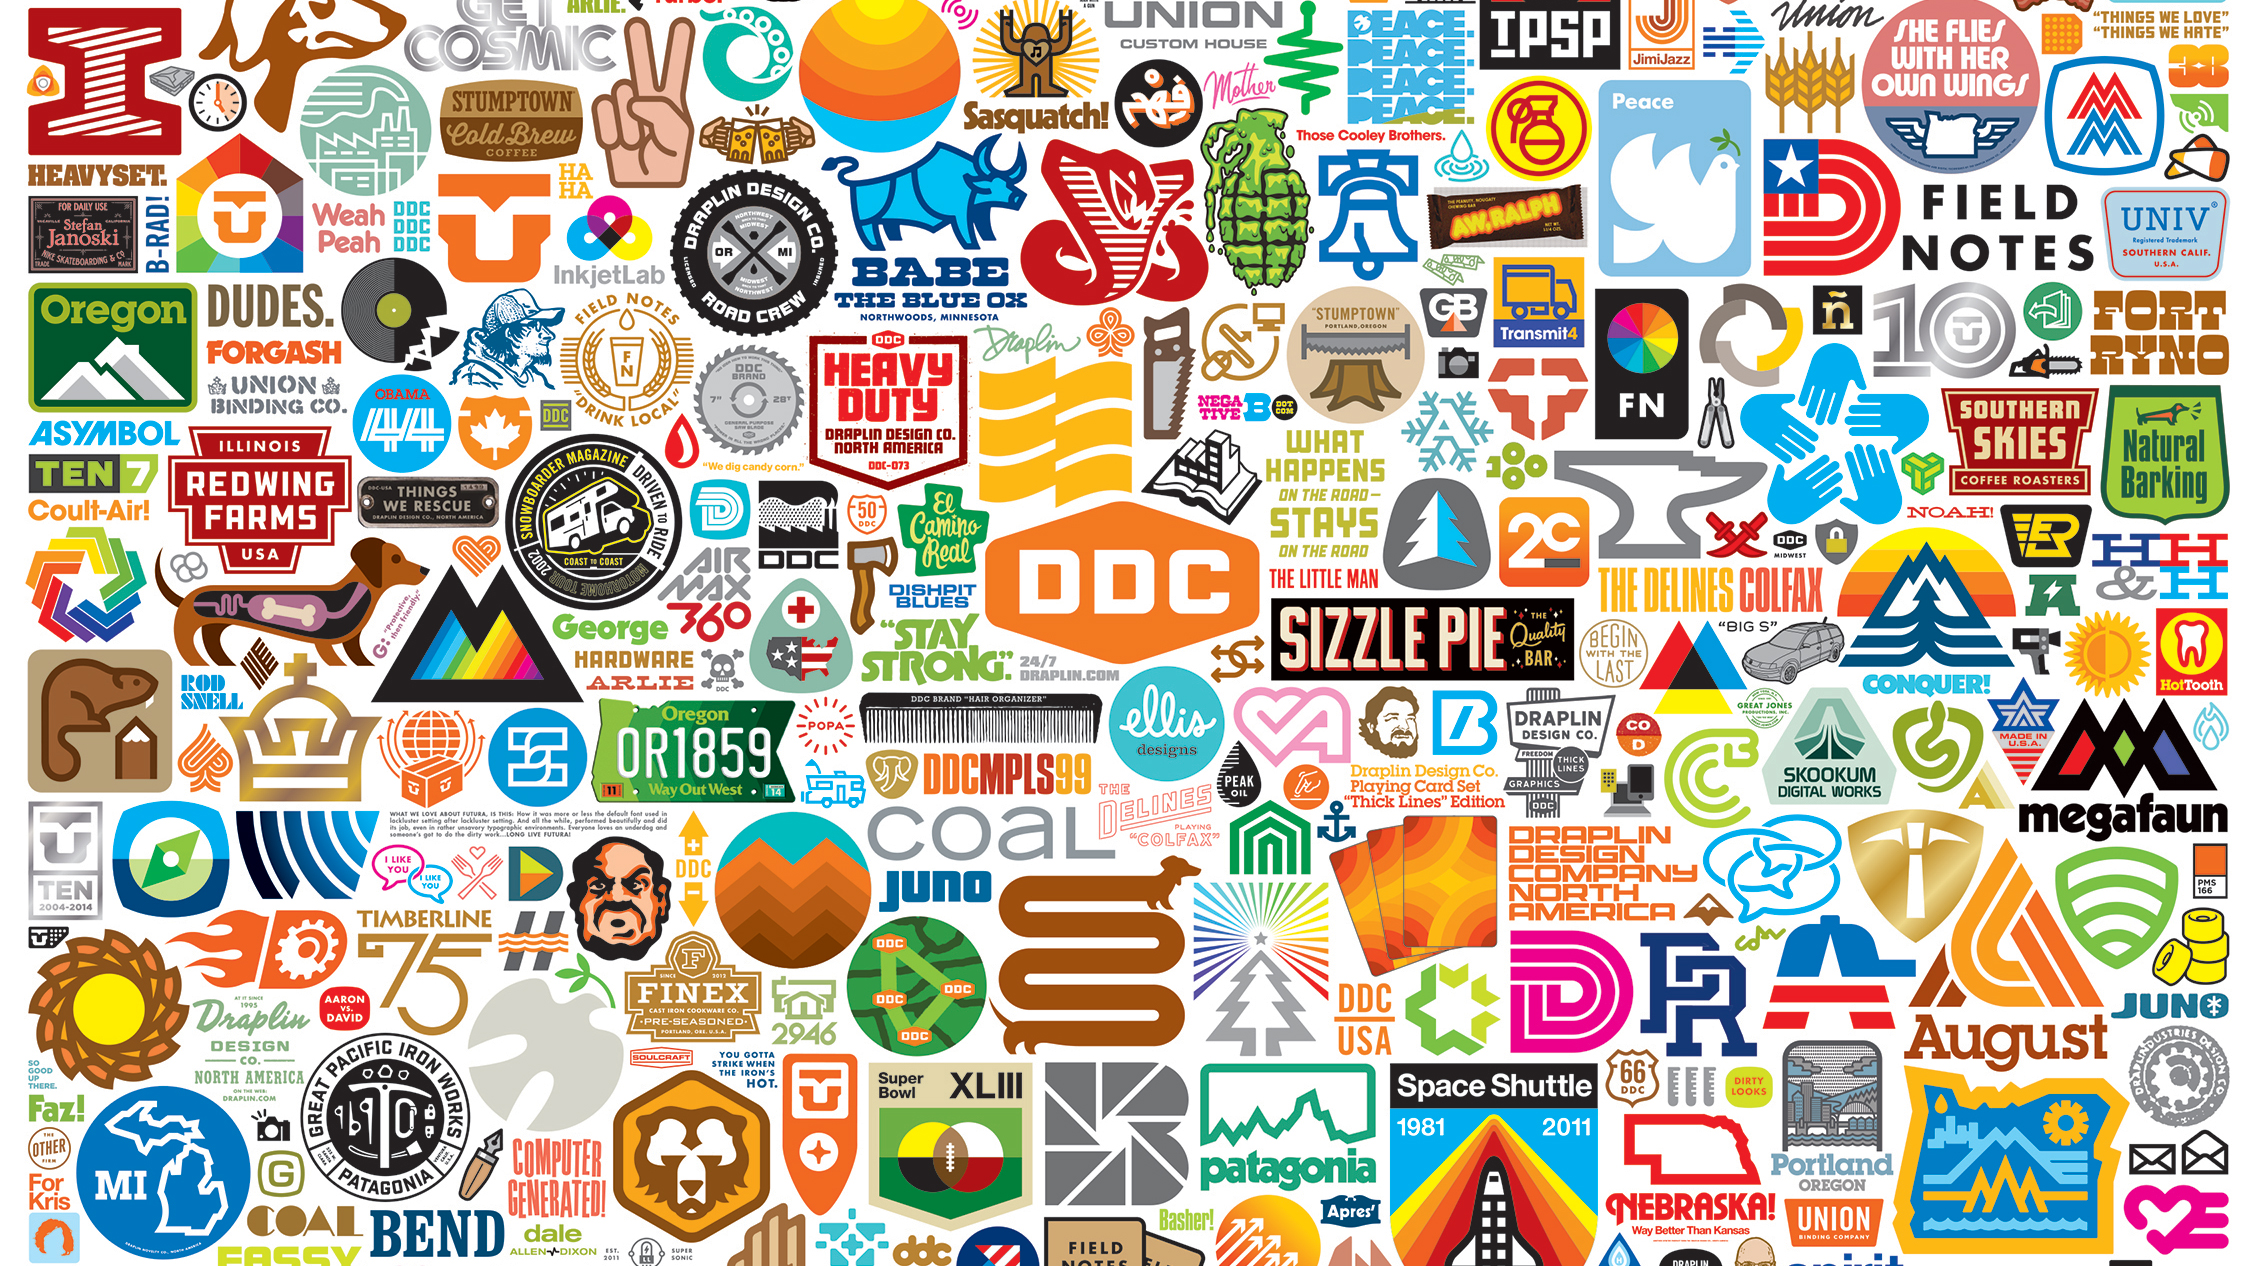 How to make your logo stand out in the digital age